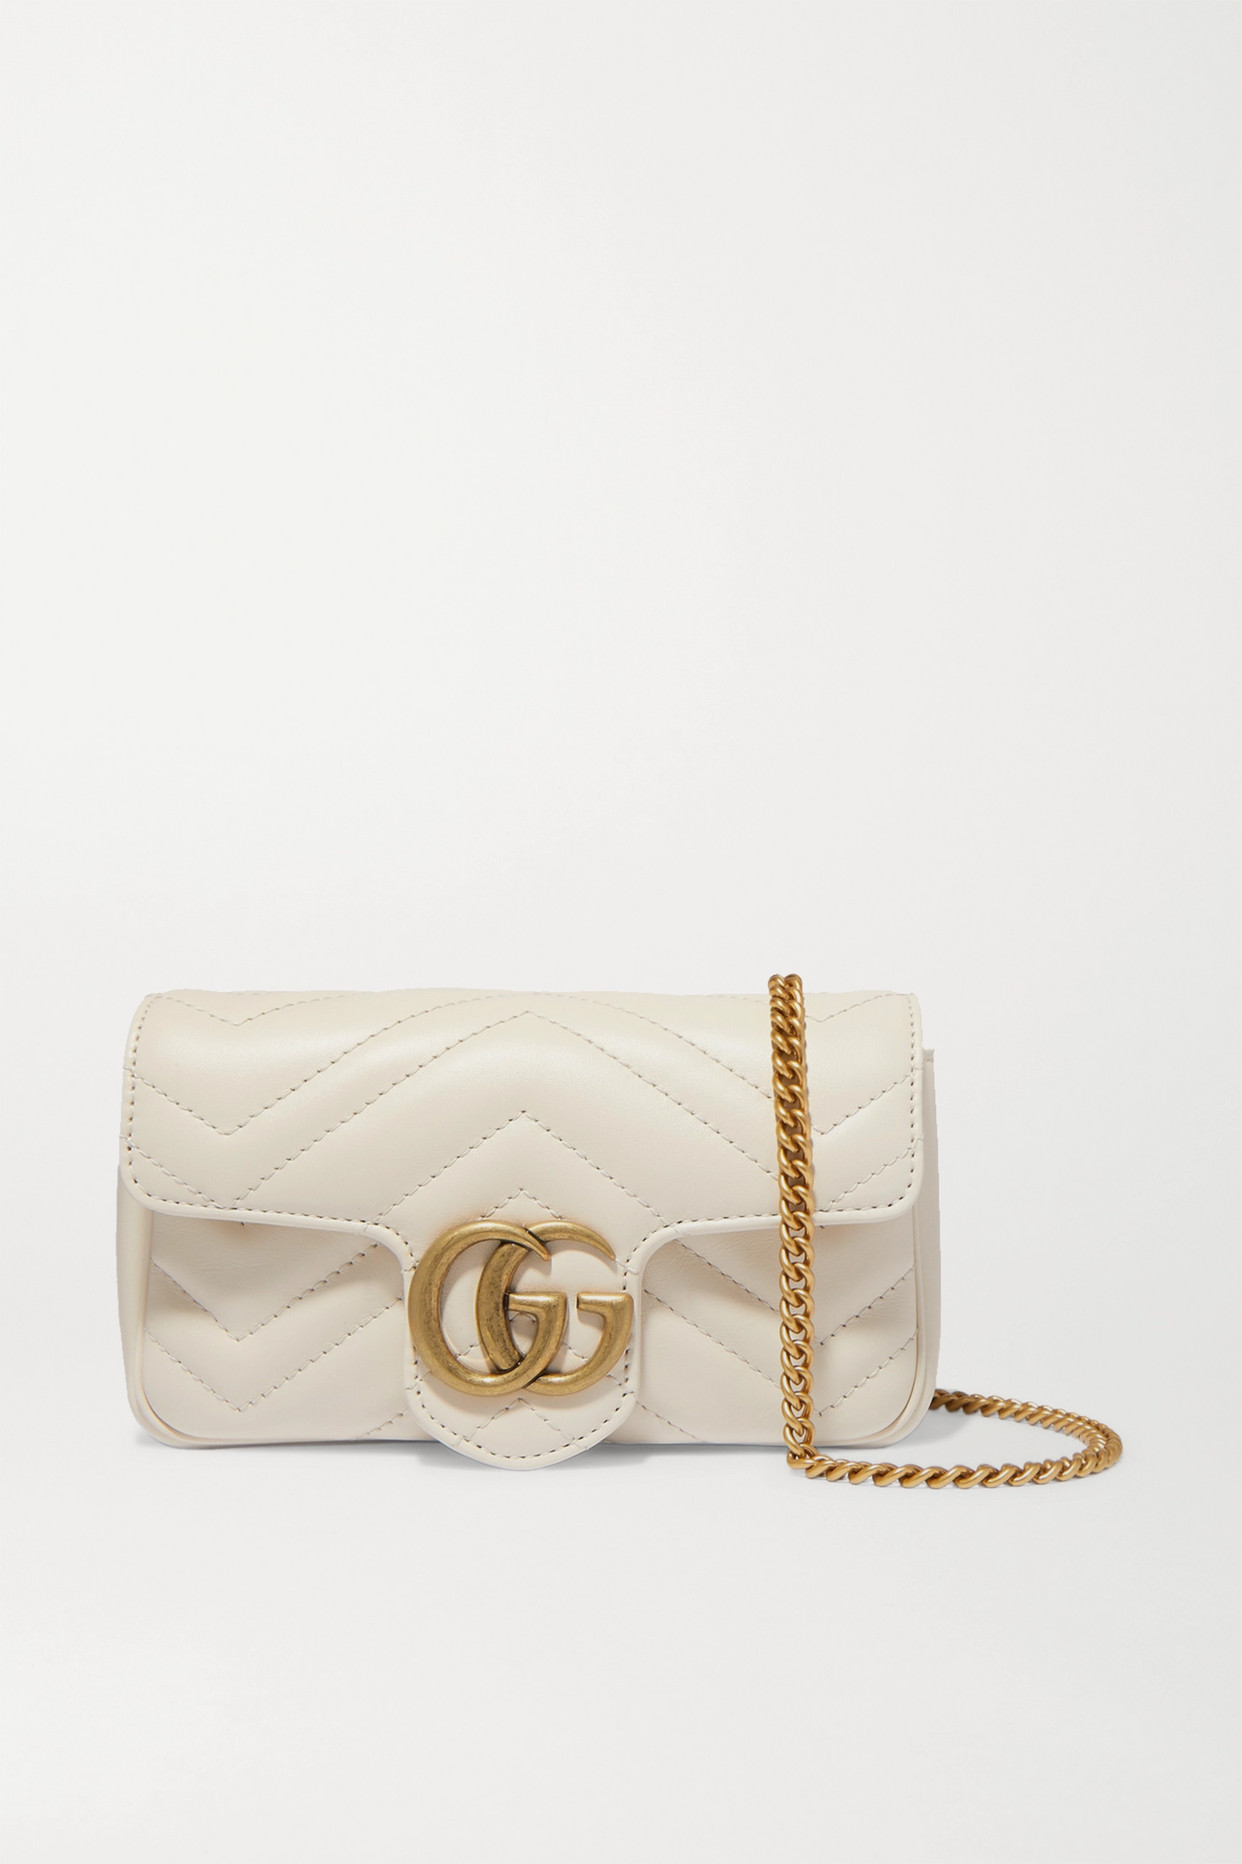 GUCCI - Gg Marmont Super Mini Quilted Leather Shoulder Bag - White - one size